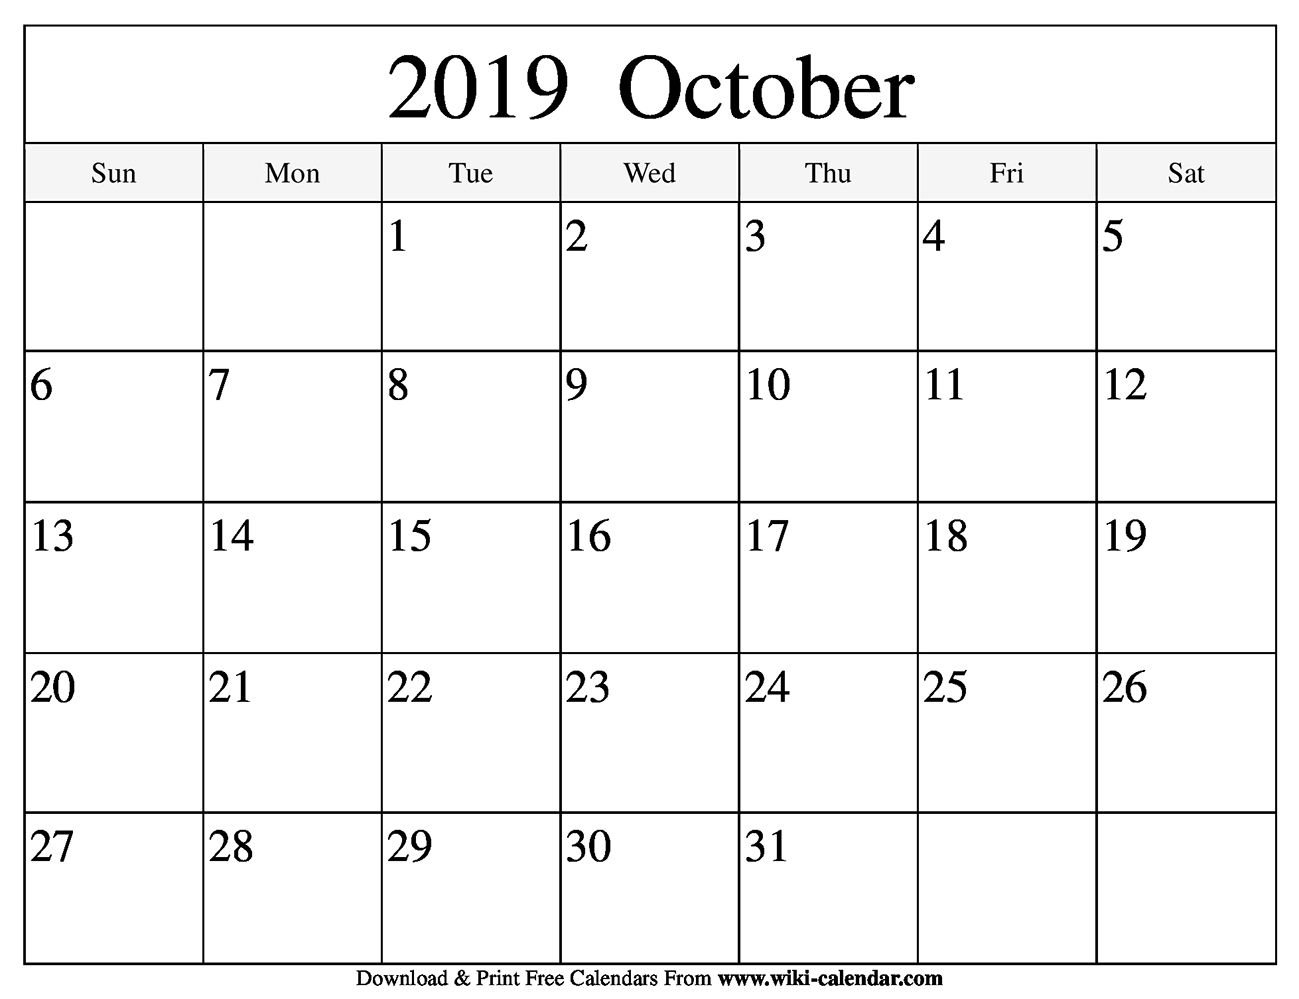 Print Free Calendars Without Downloading | Example Free Printable Calendar Without Downloading